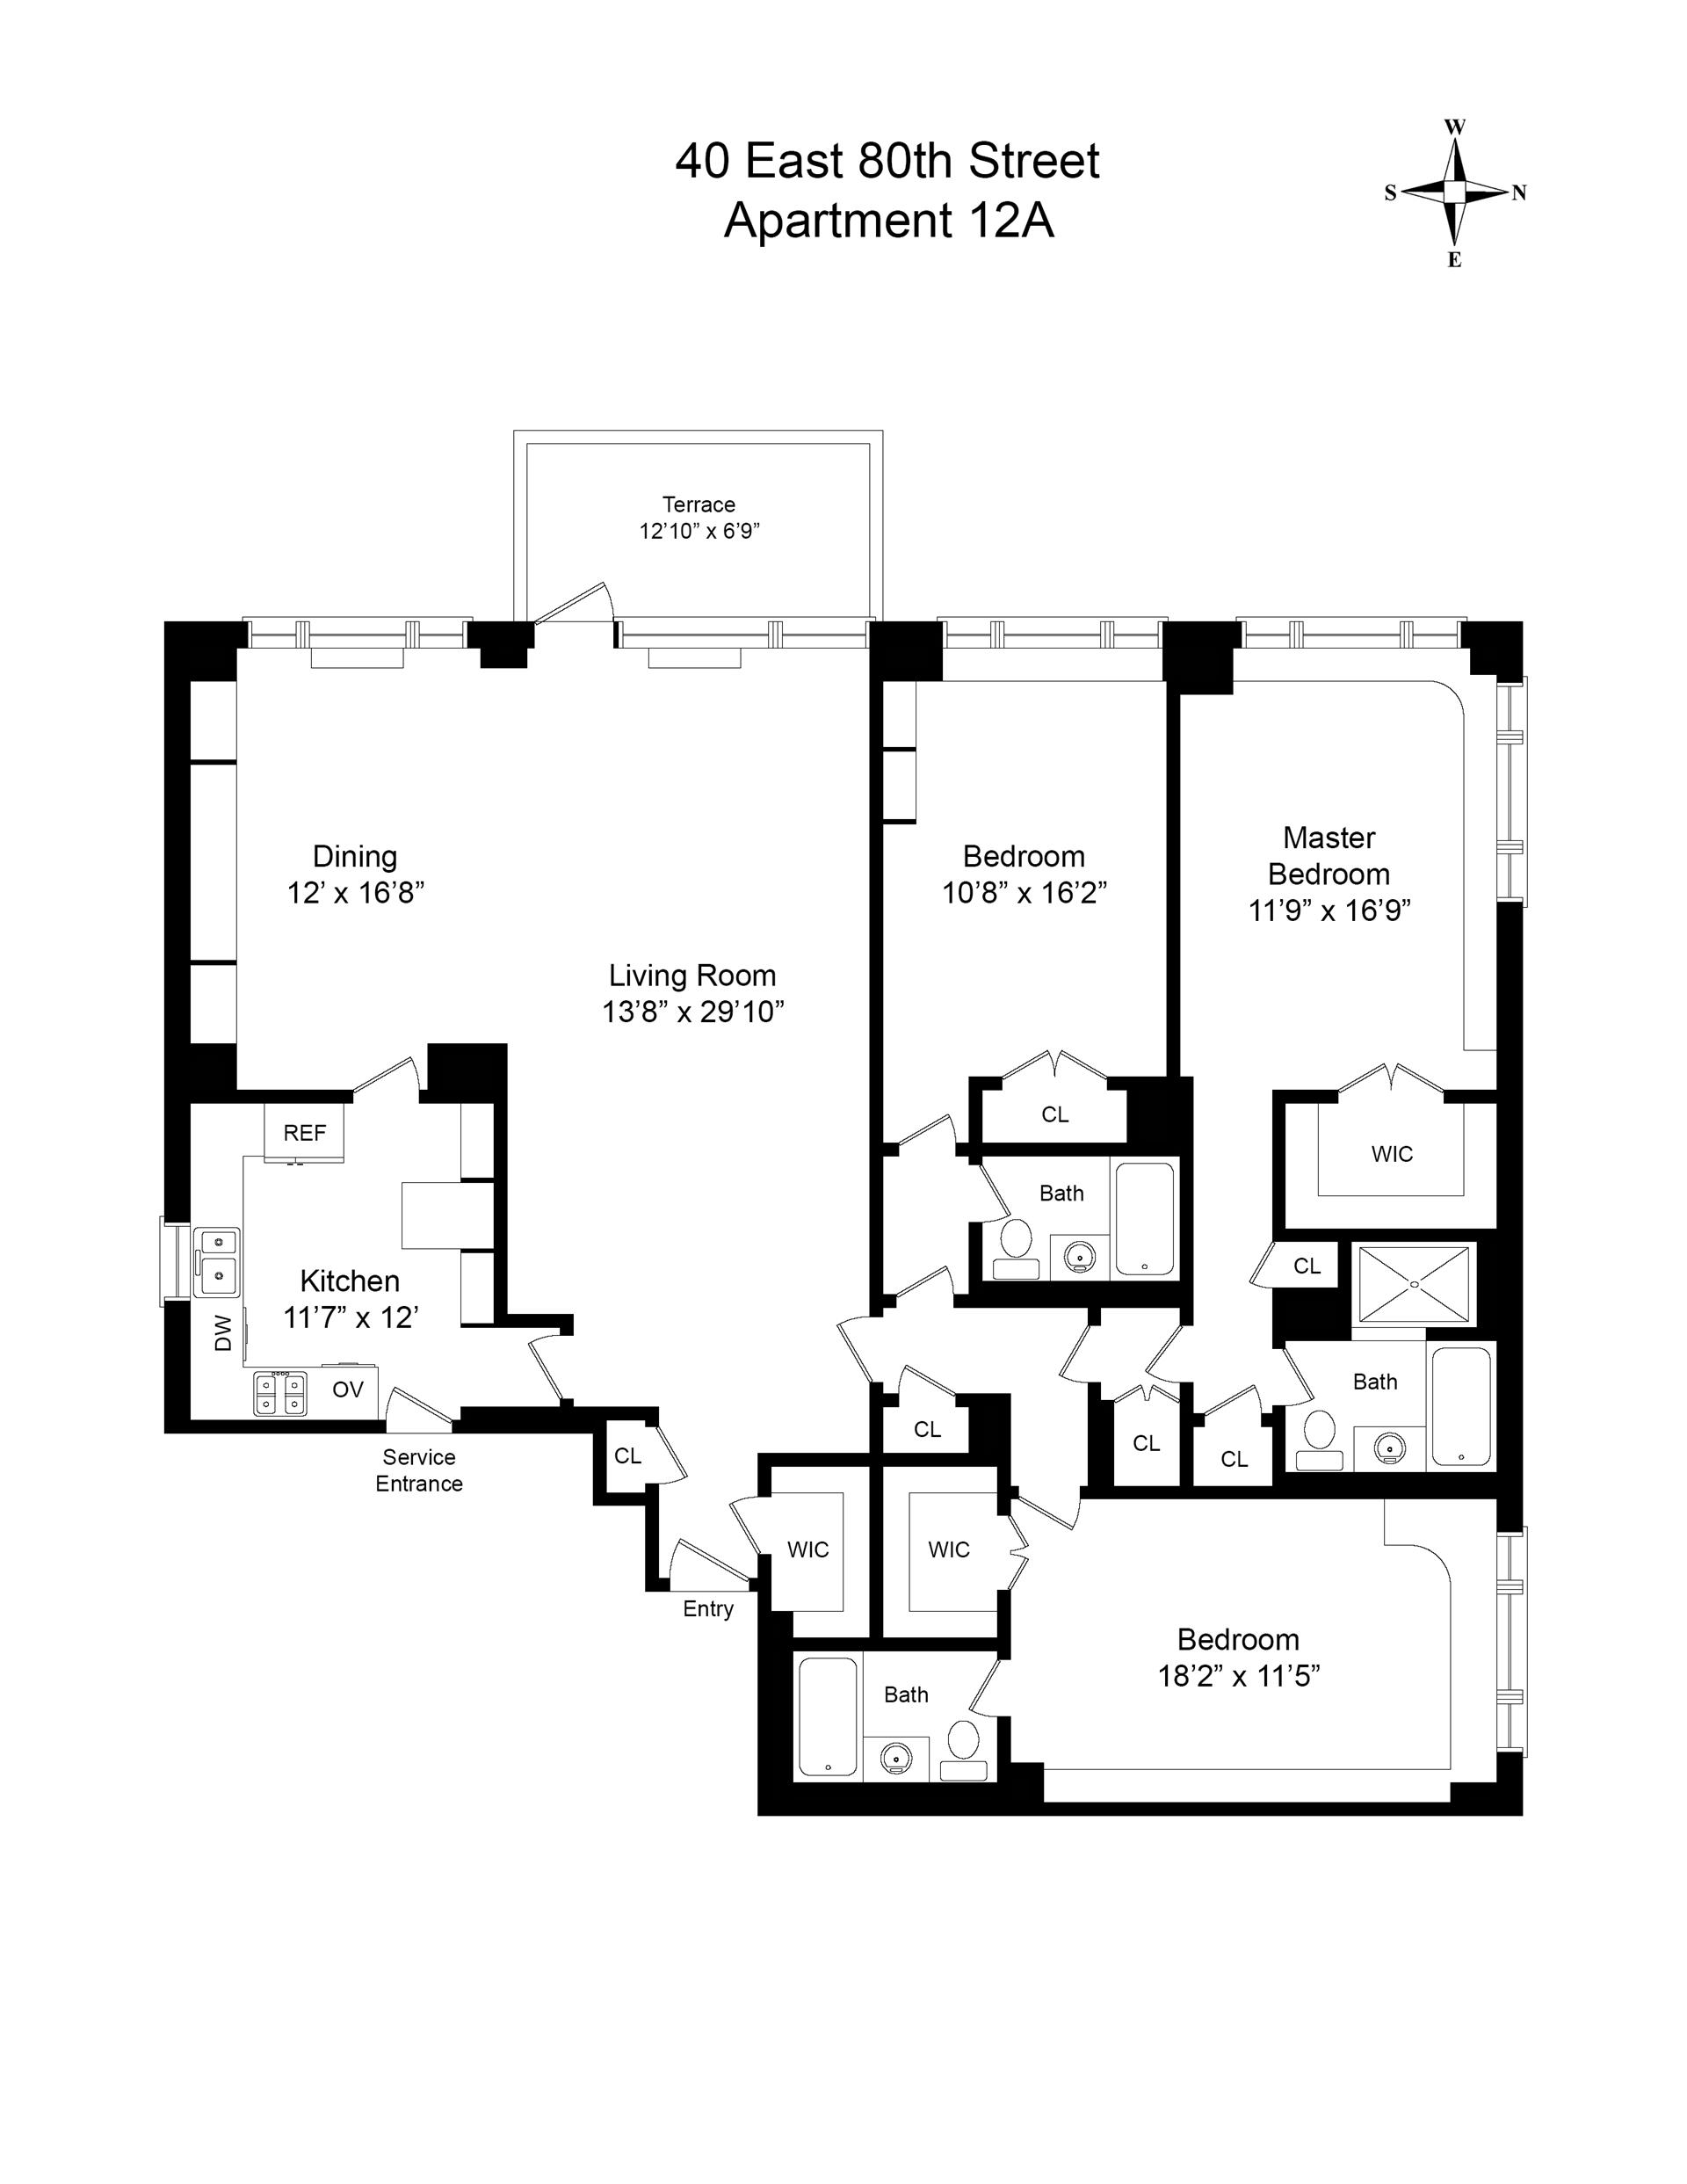 Floor plan of 40 East 80 Apartment Corp, 40 East 80th St, 12A - Upper East Side, New York